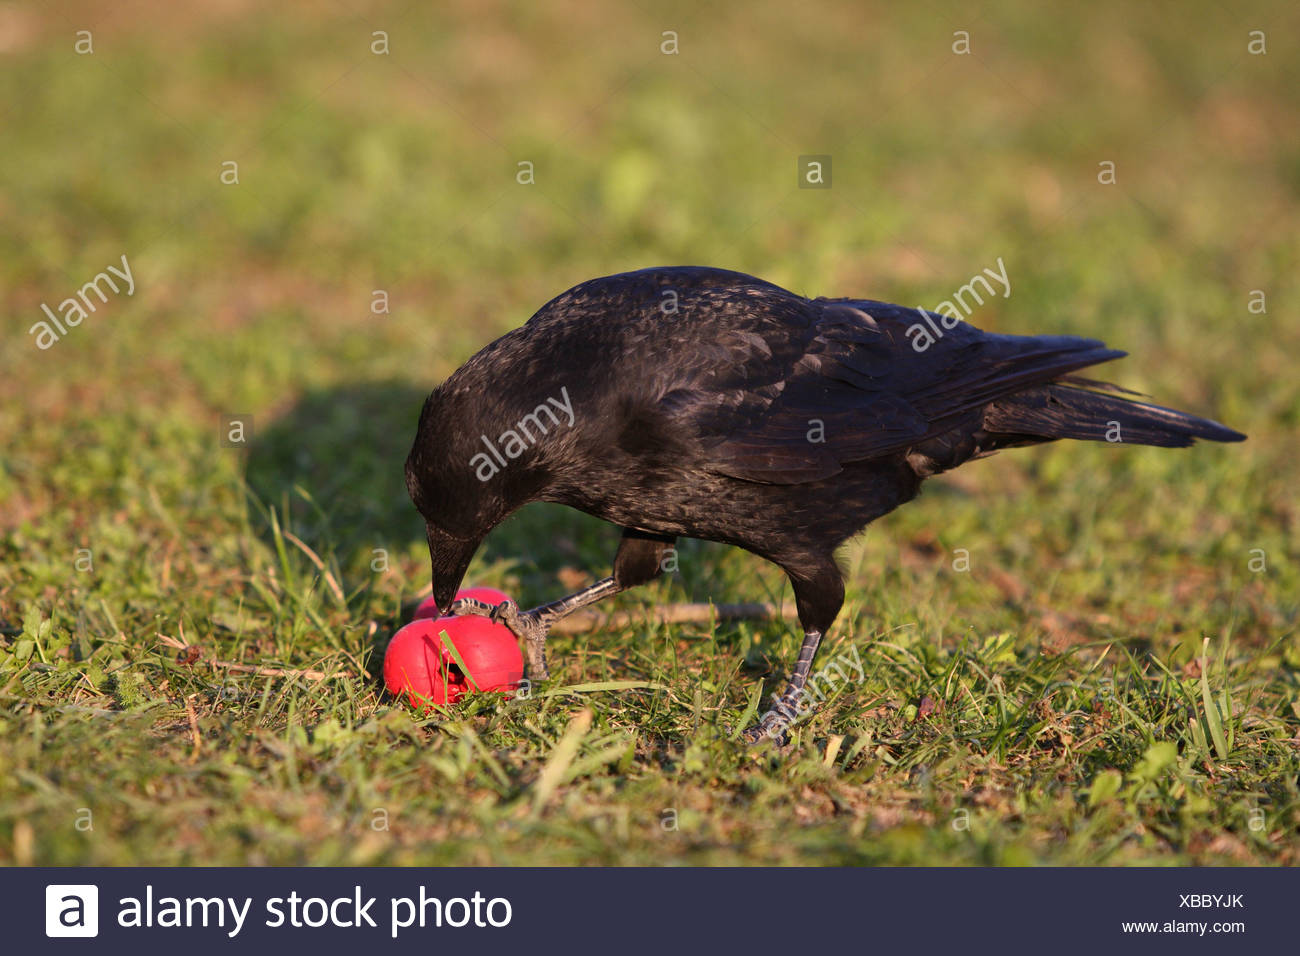 crow - Stock Image